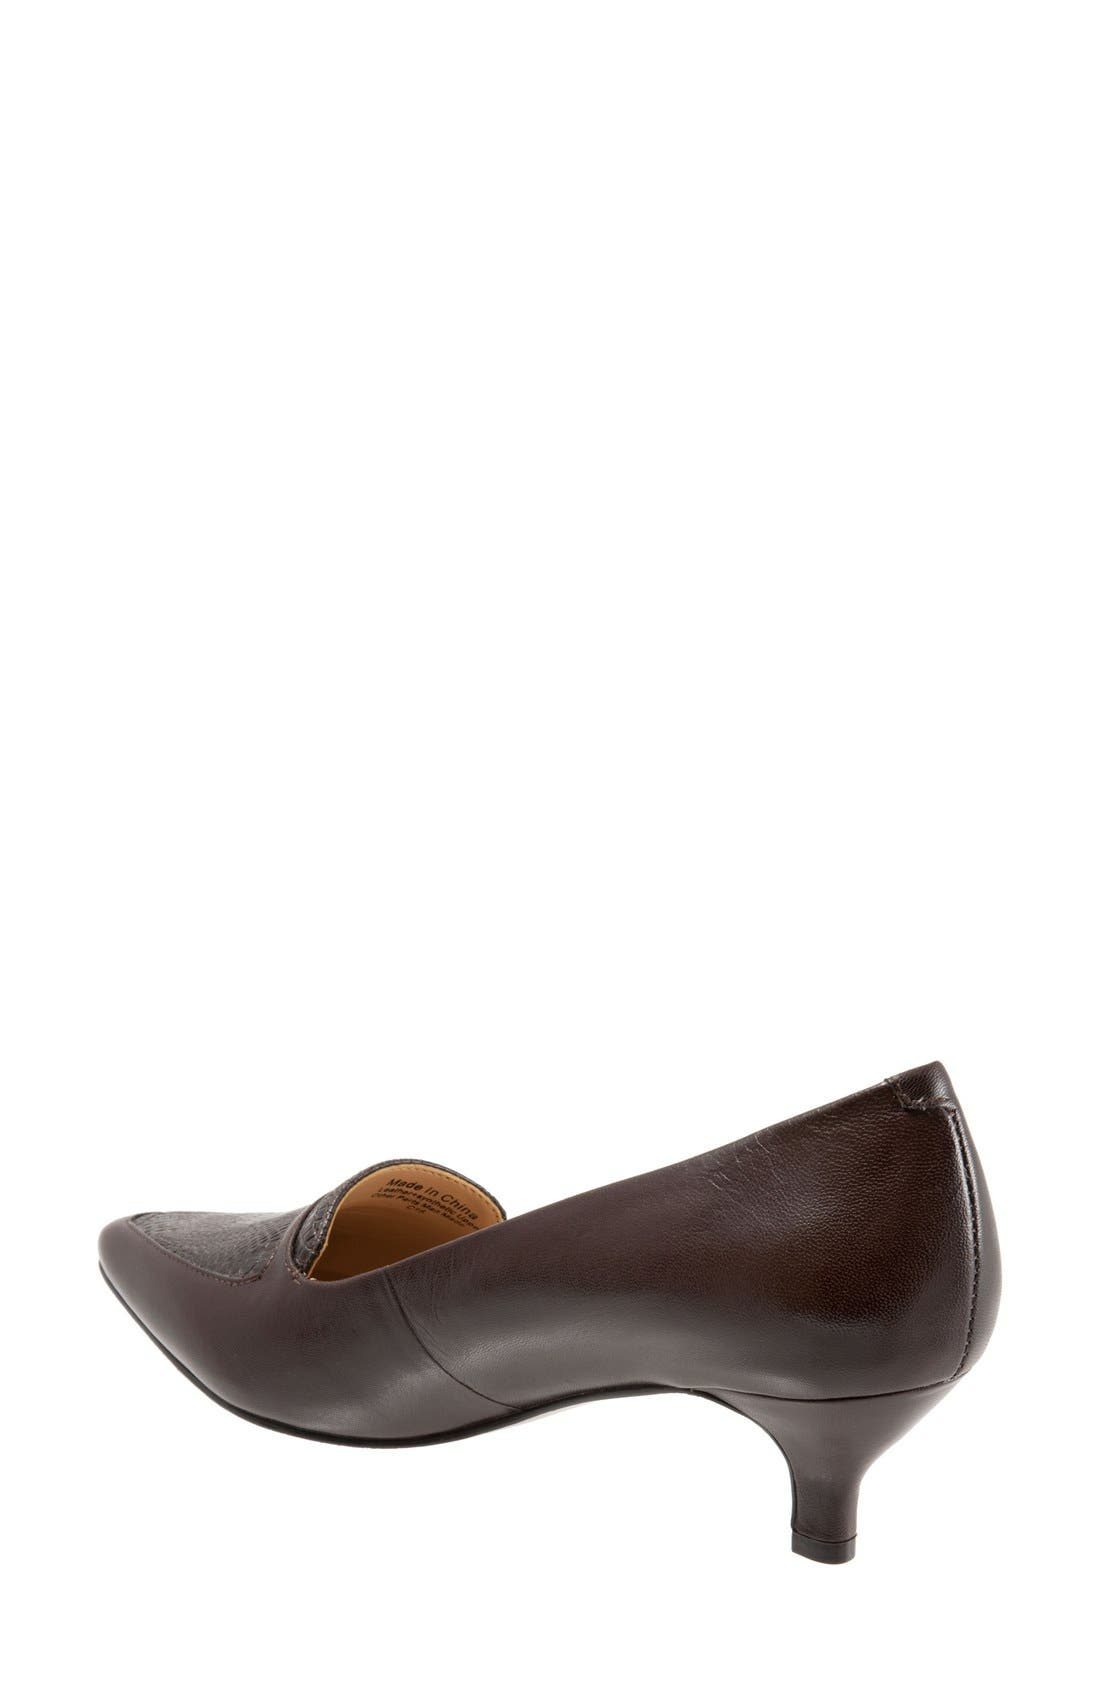 'Piper' Pointy Toe Pump,                             Alternate thumbnail 23, color,